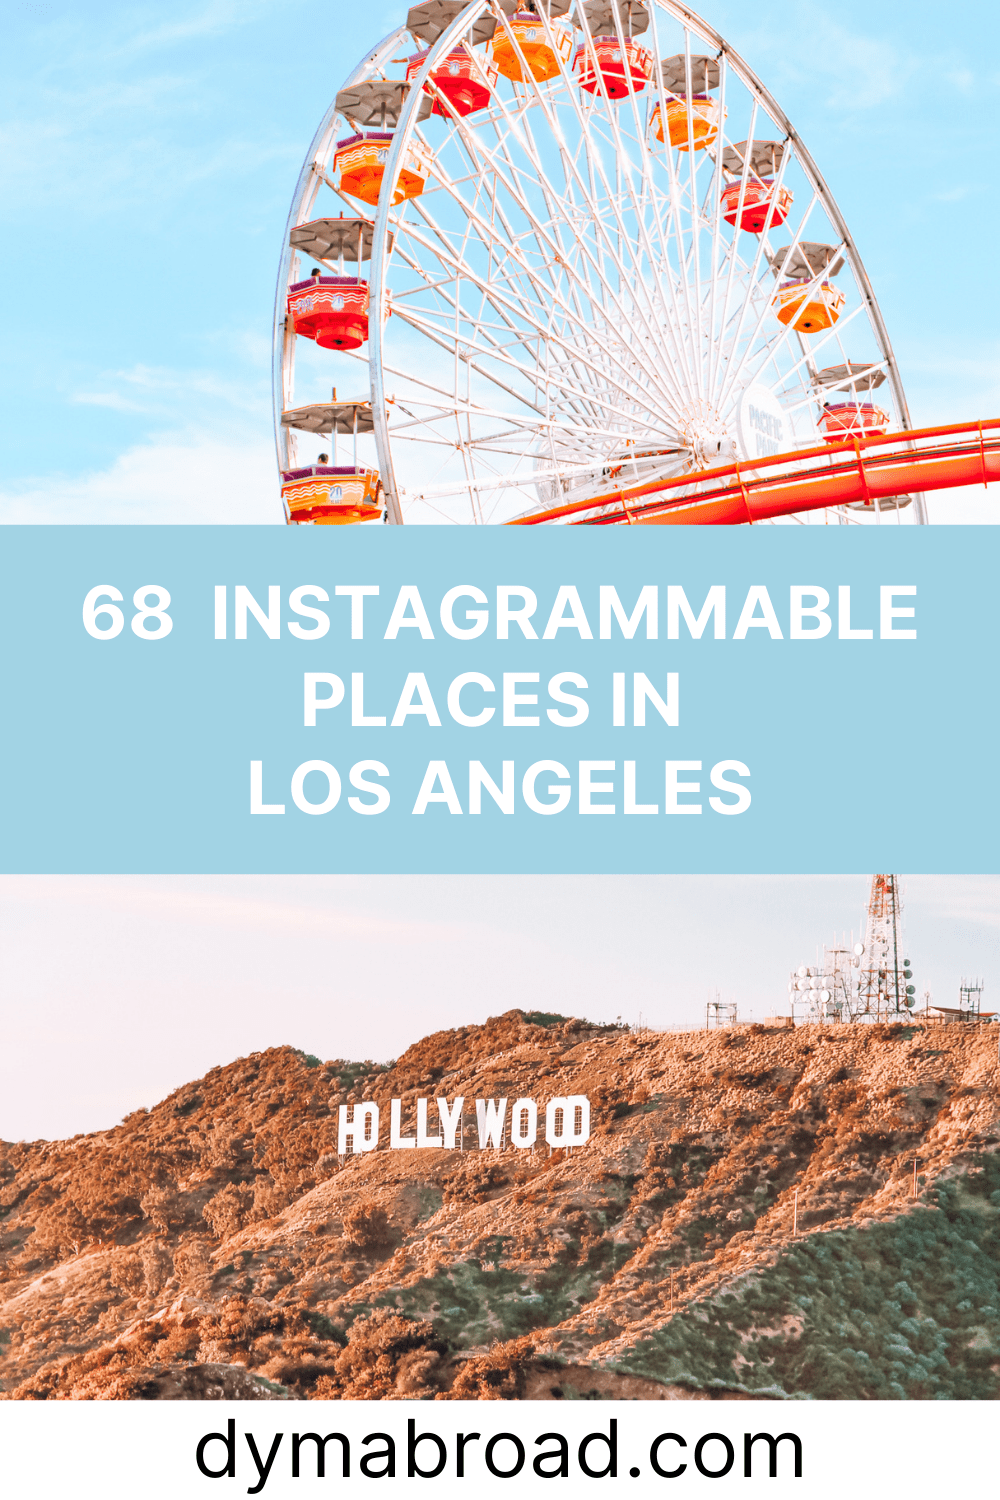 Instagrammable places in LA second Pinterest image